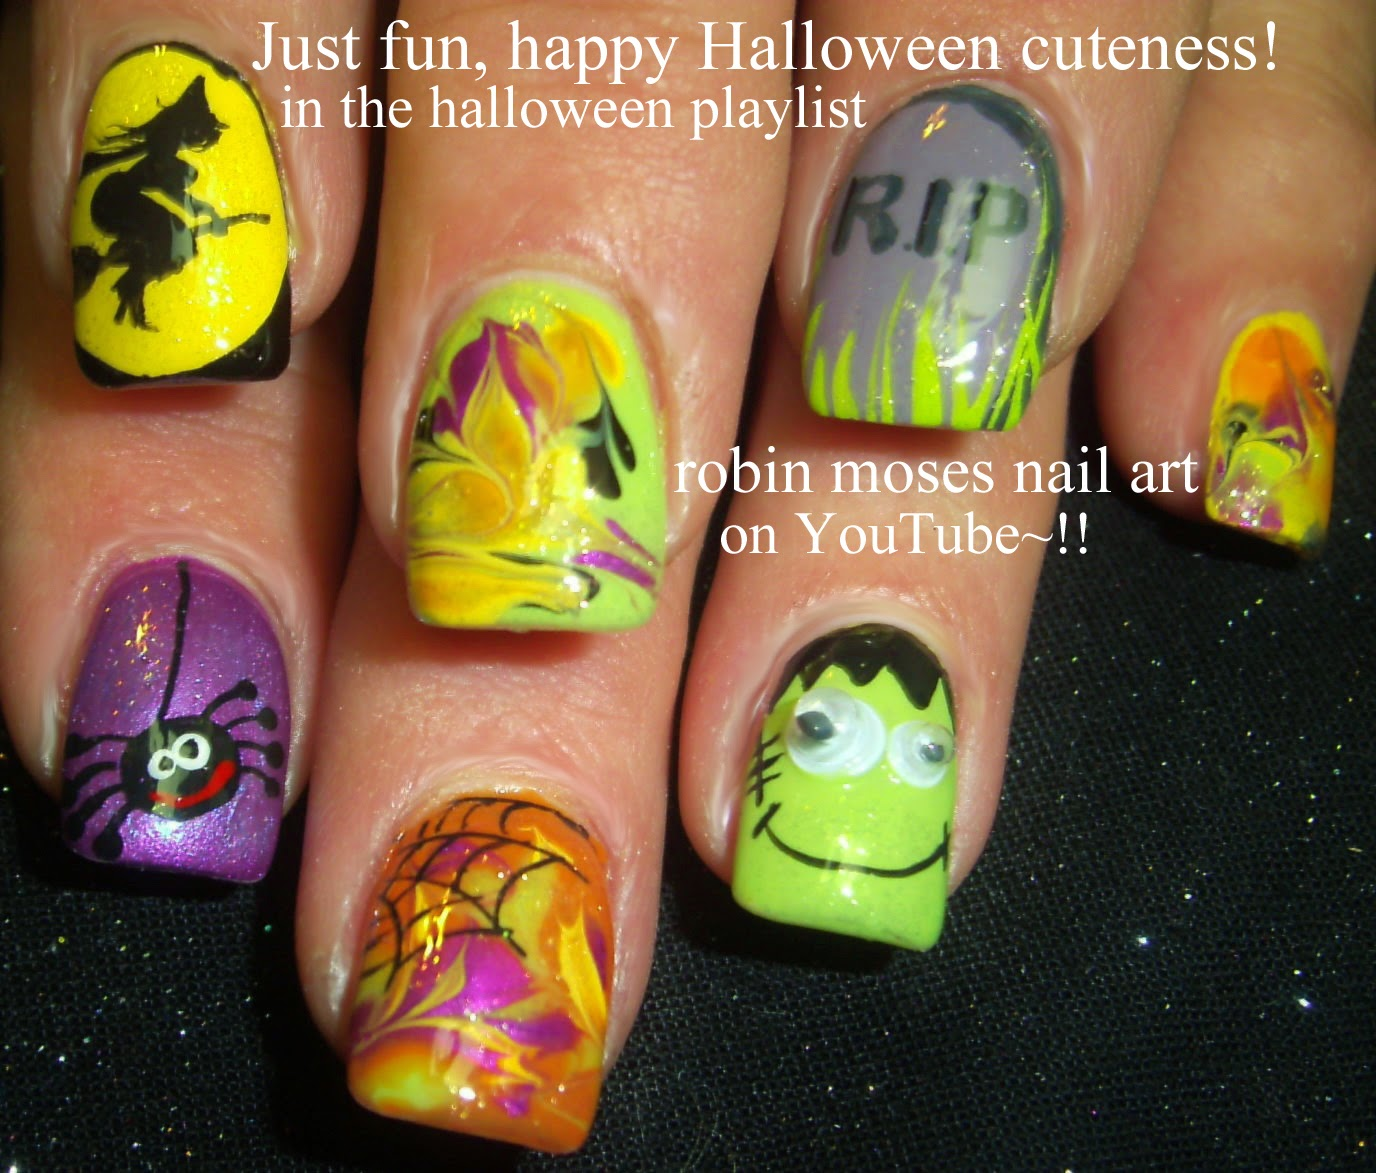 Robin moses nail art halloween nails cute halloween ideas easy halloween ghost witch and owl nails solutioingenieria Choice Image